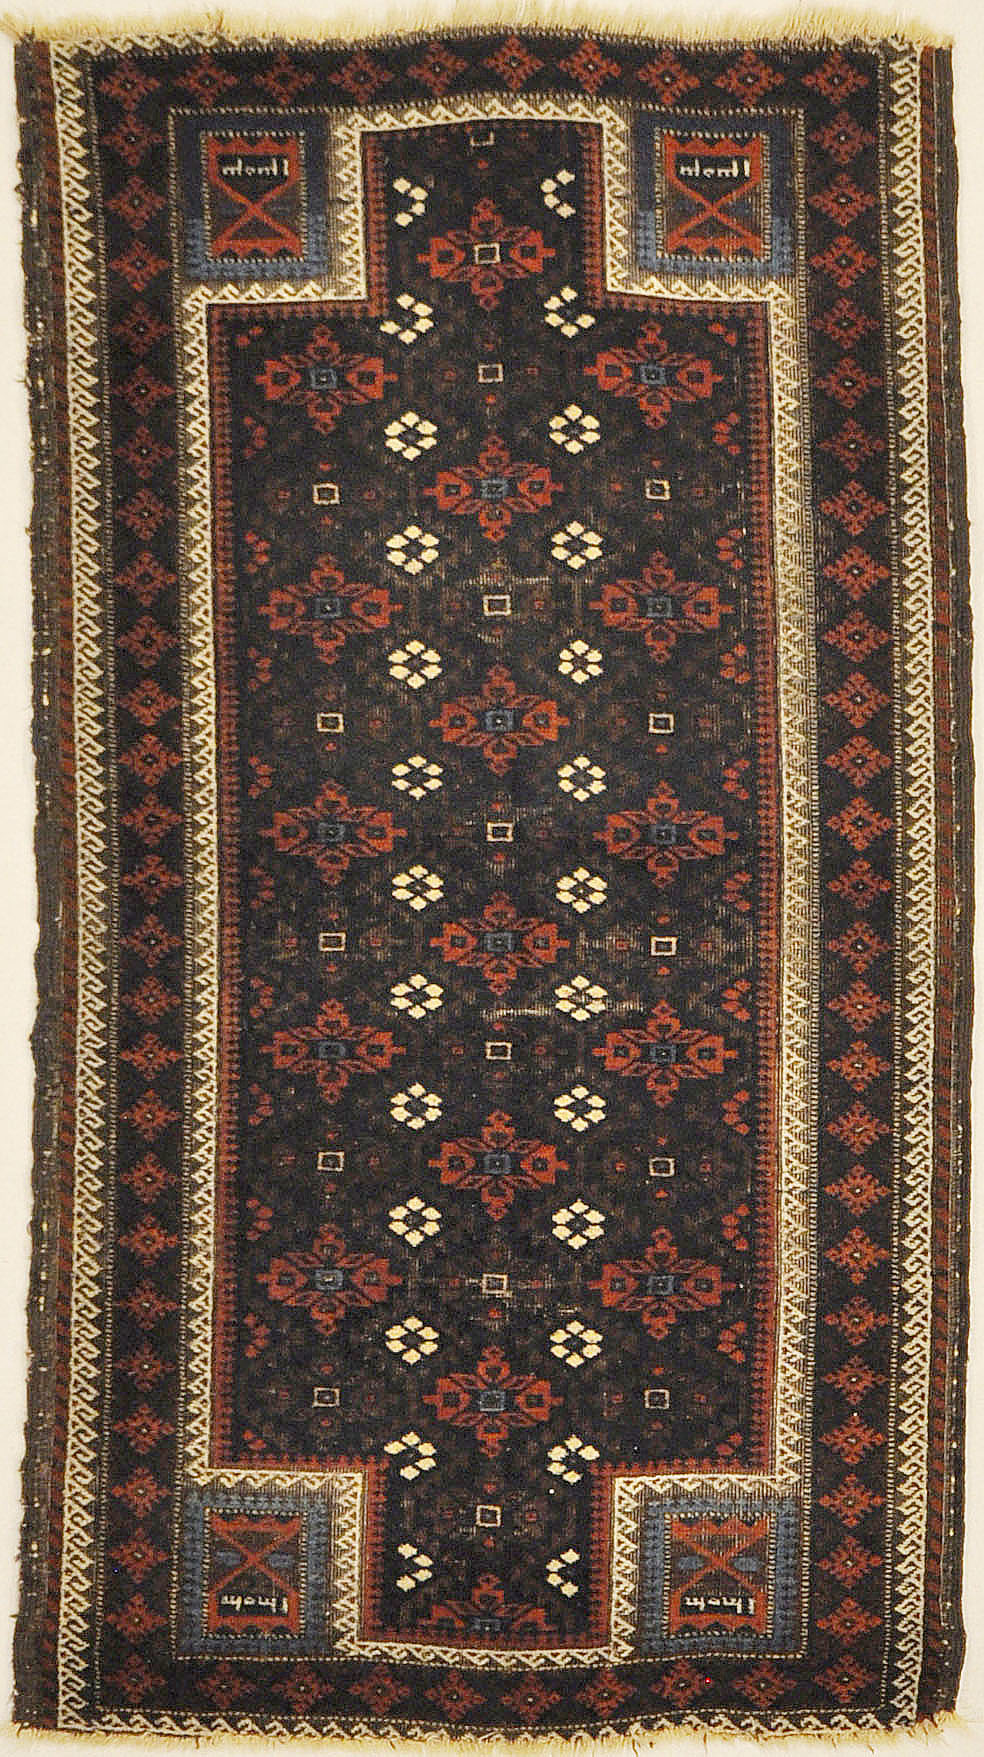 An antique and original burial Baluch dated rug. Dated on all four corners. Used as a casket covering. Sold by Santa Barbara Design Center.